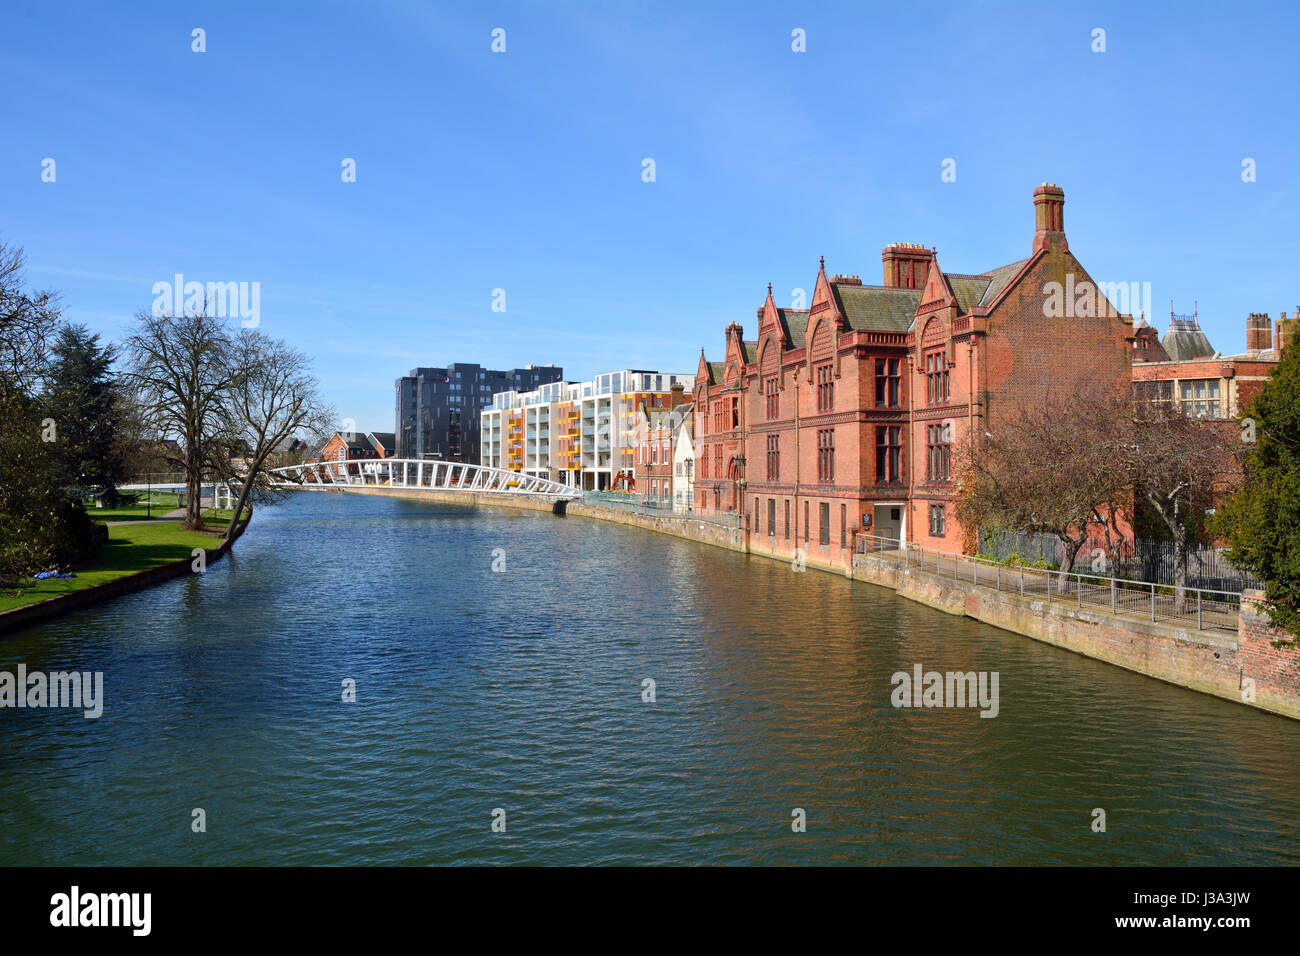 River North regeneration project in Bedford, Bedfordshire, England - Stock Image